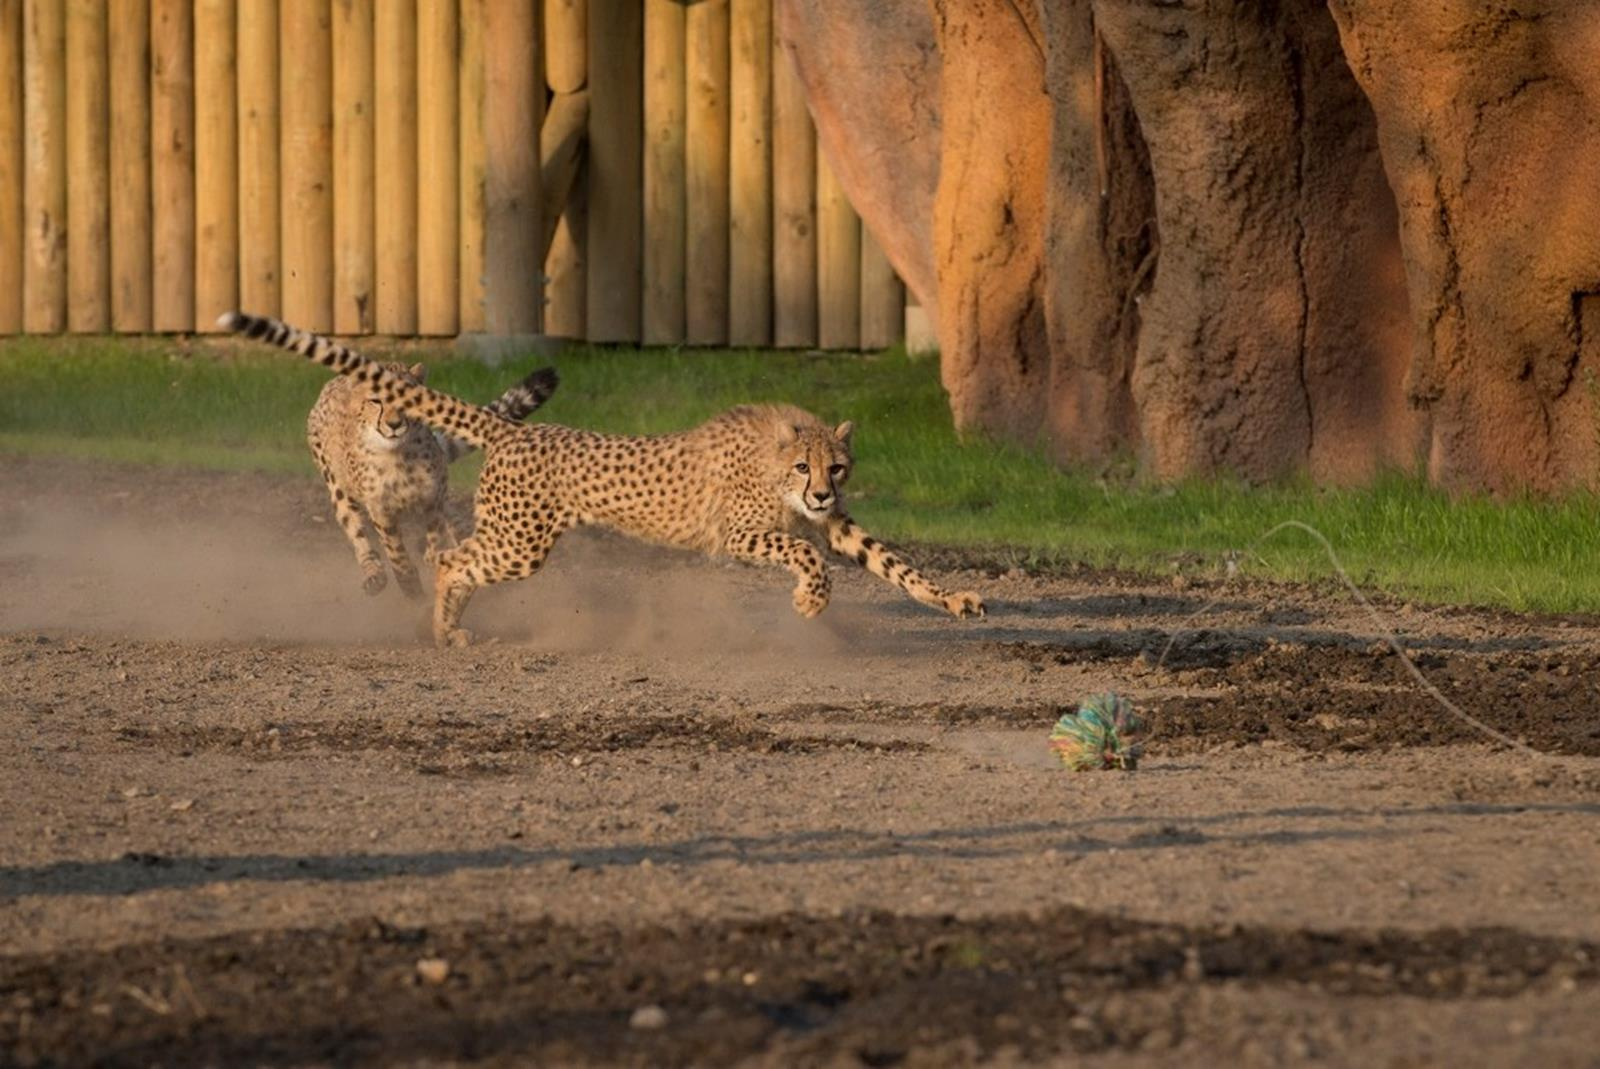 Cheetah Run at Heart of Africa at Columbus Zoo. Credit: Grahm S. Jones.